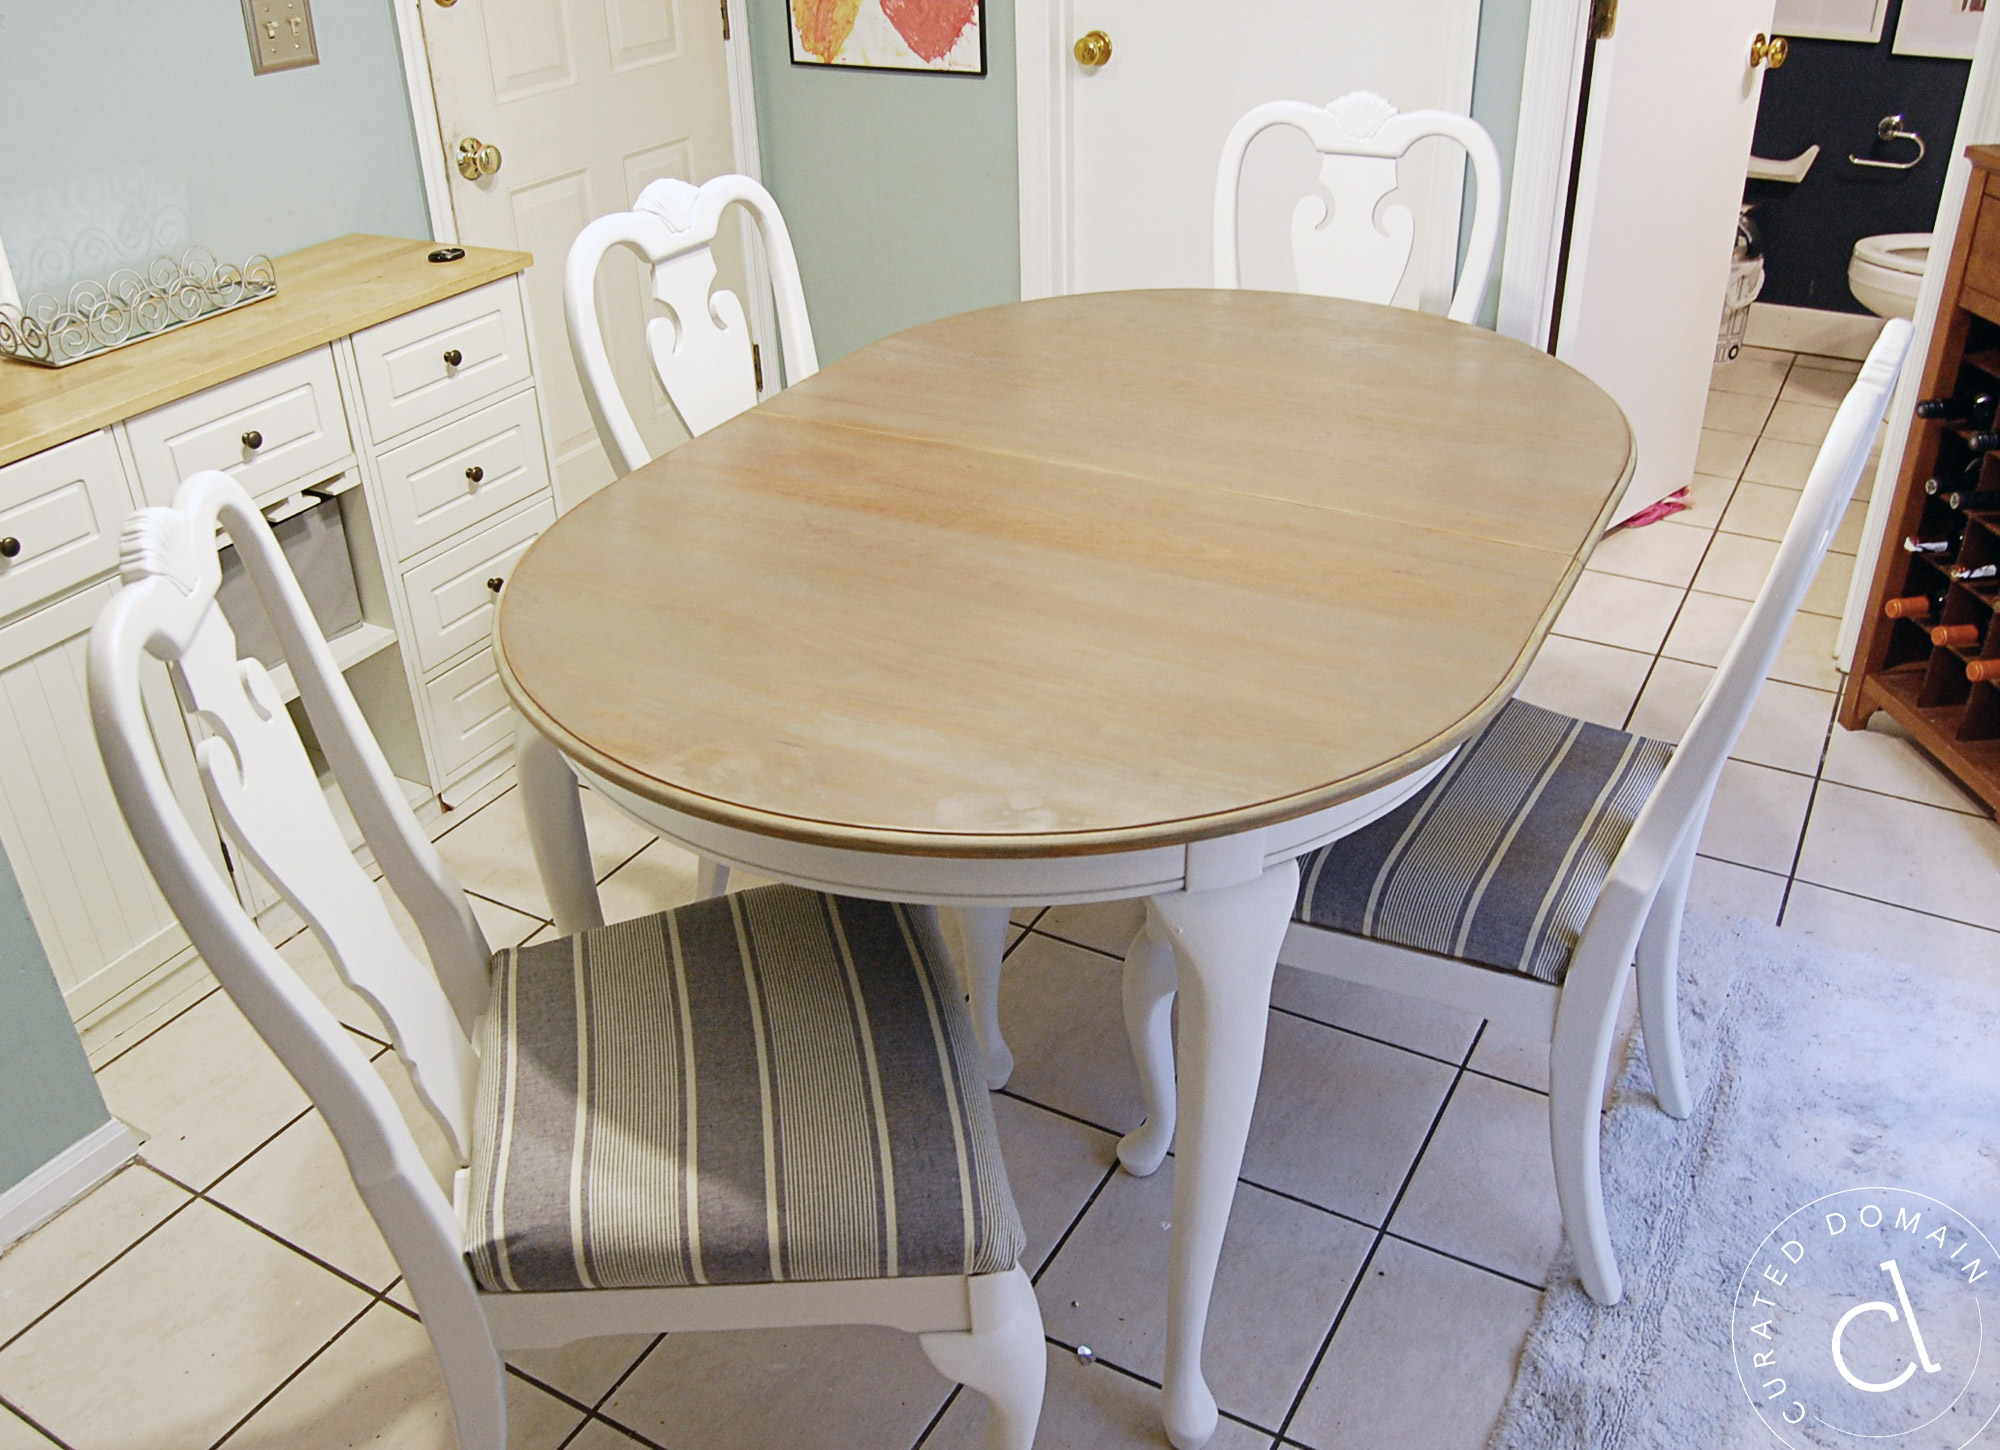 Groovy Diy Dining Table Chairs Curated Domain Download Free Architecture Designs Embacsunscenecom